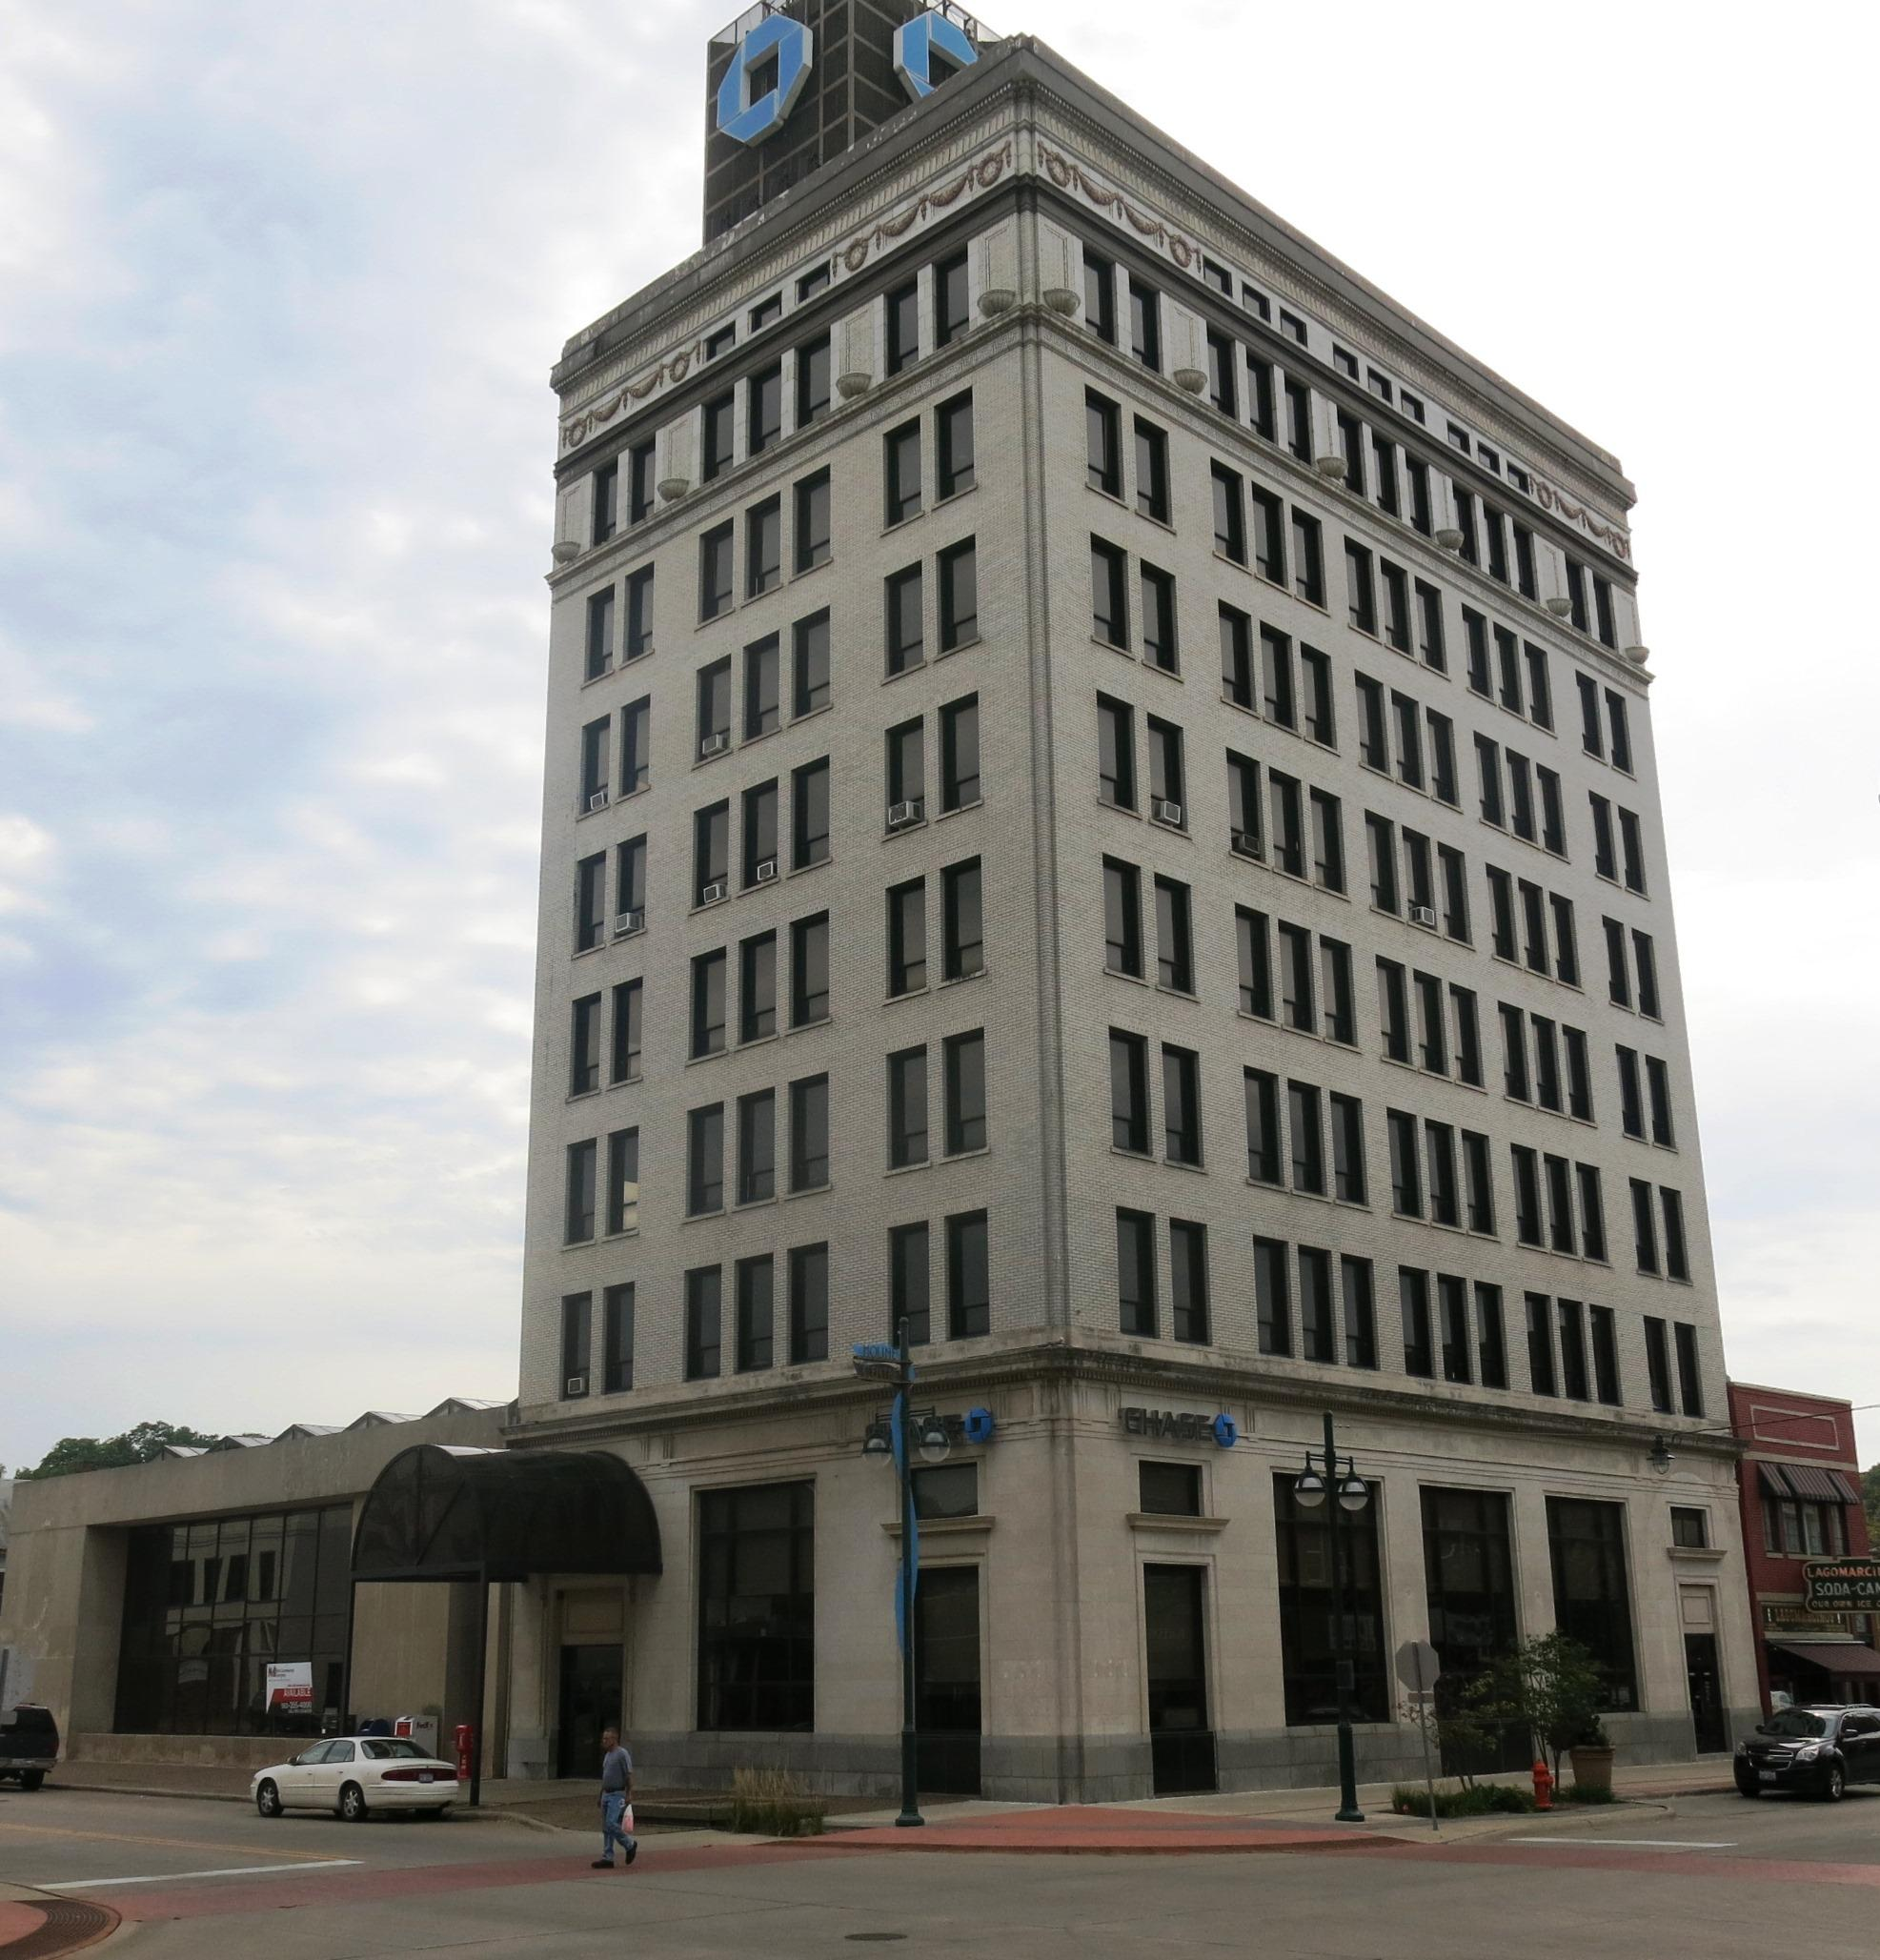 Hotel & More Apartments Planned For Downtown Moline